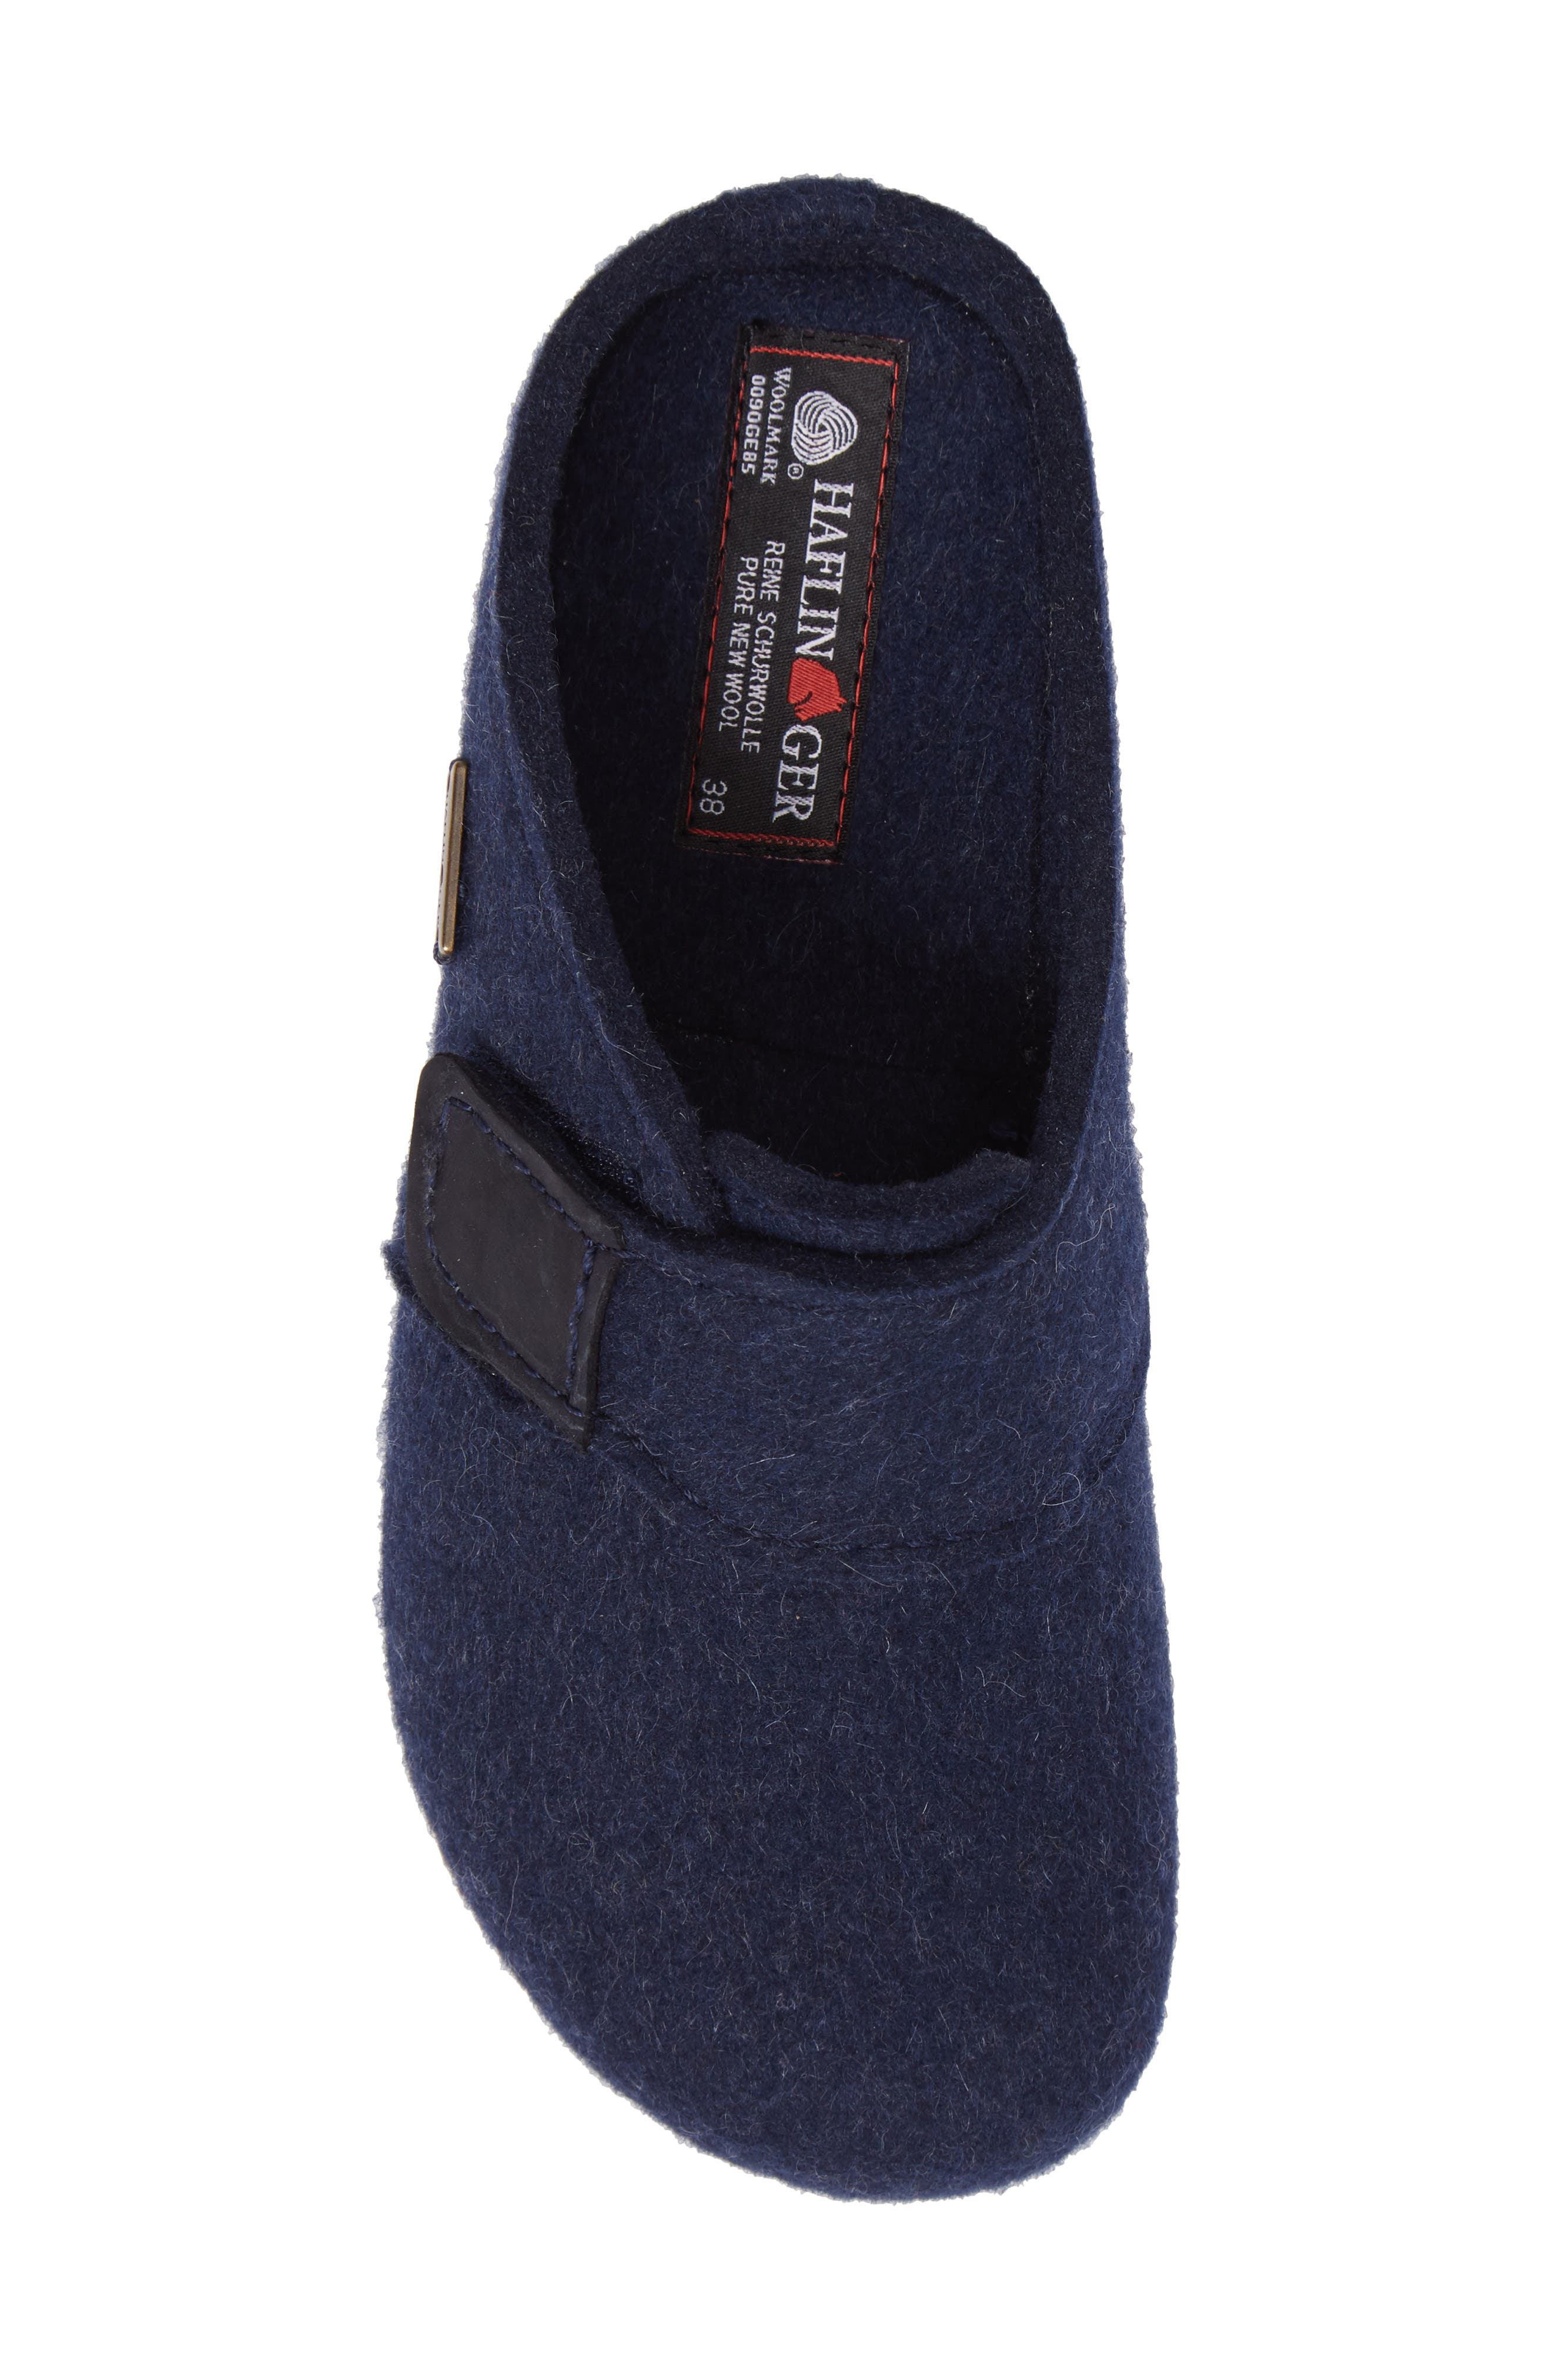 Grizzly Journey Clog Slipper,                             Alternate thumbnail 5, color,                             Captains Blue Wool